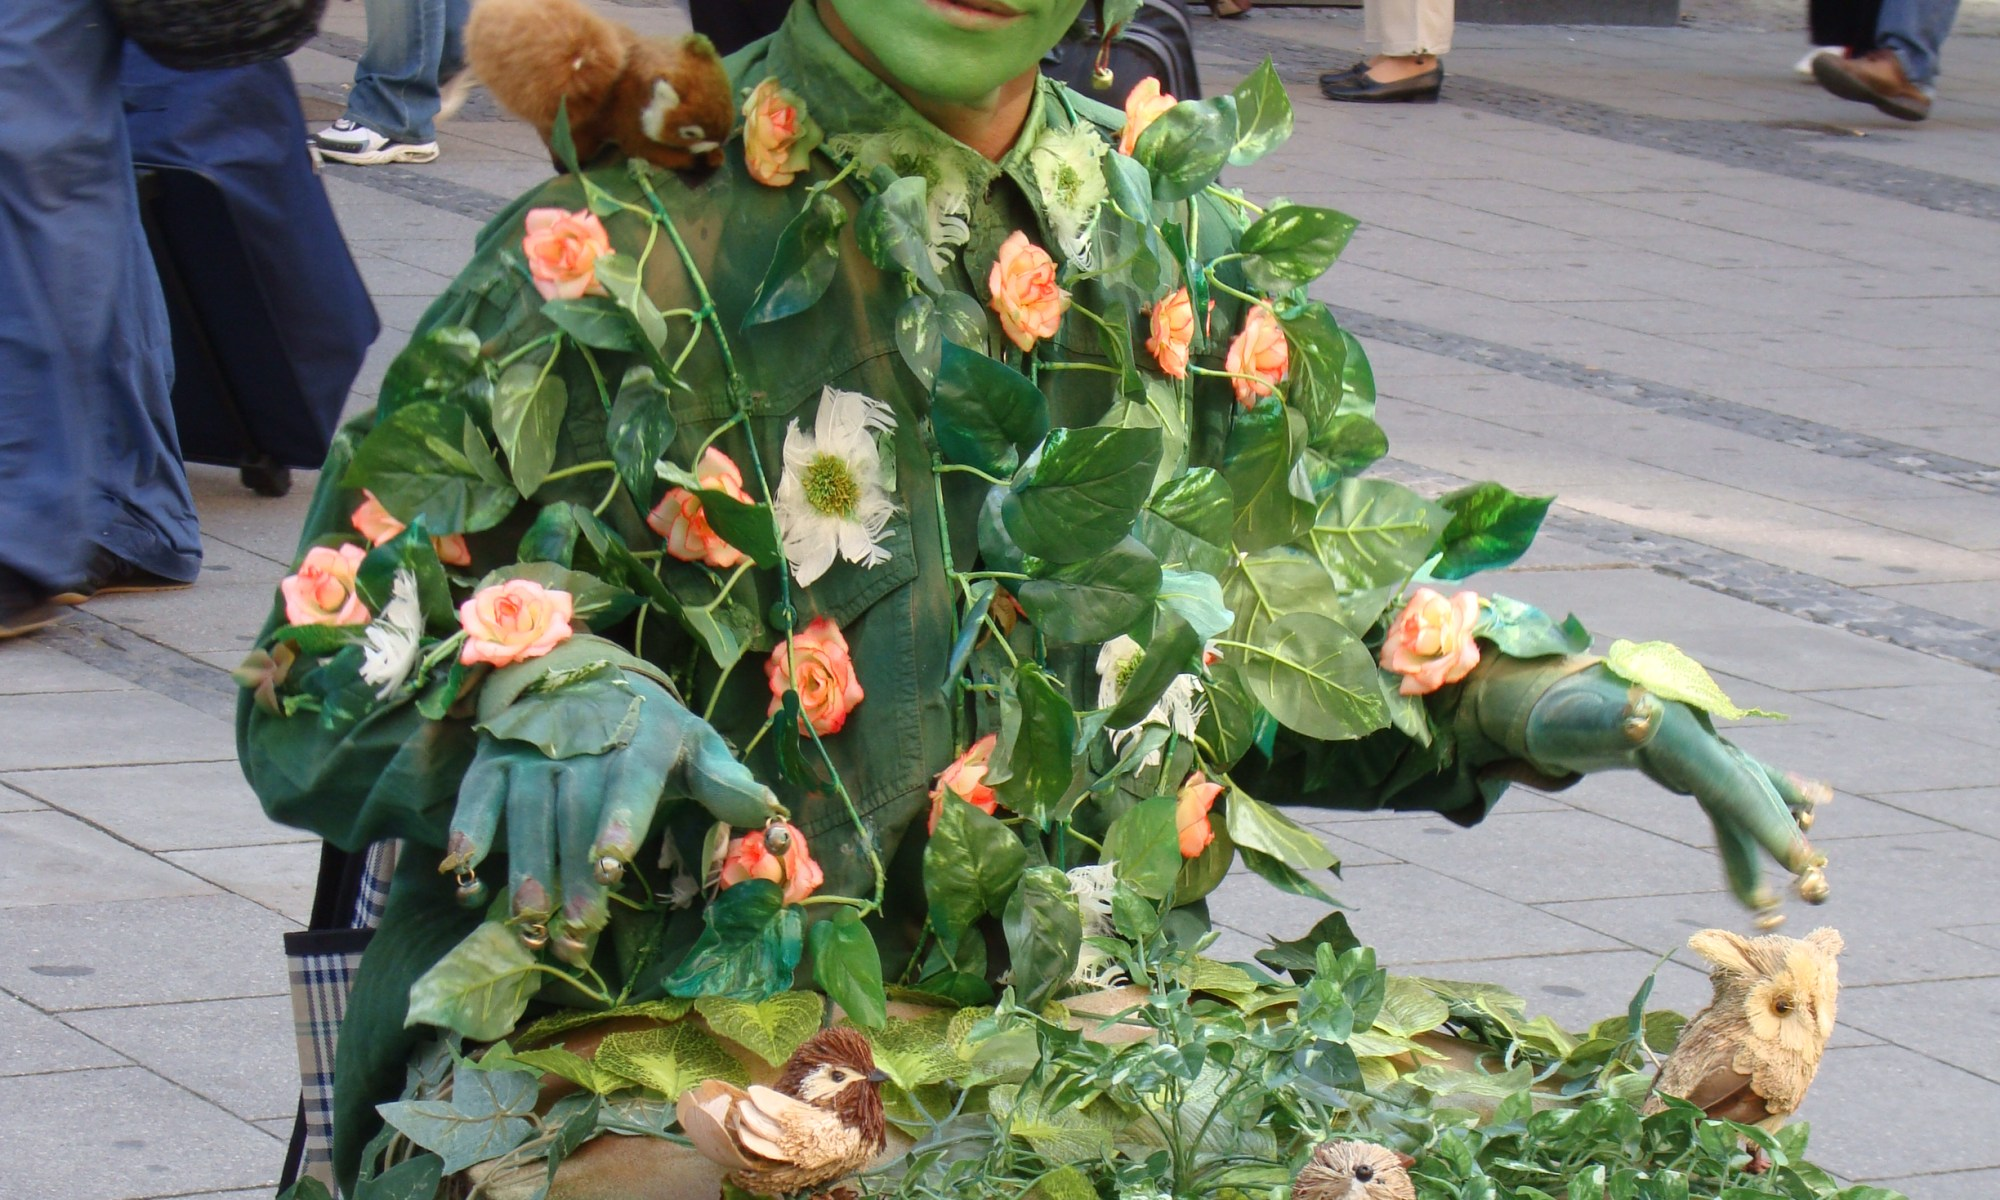 picture of the Green Man, street entertainer